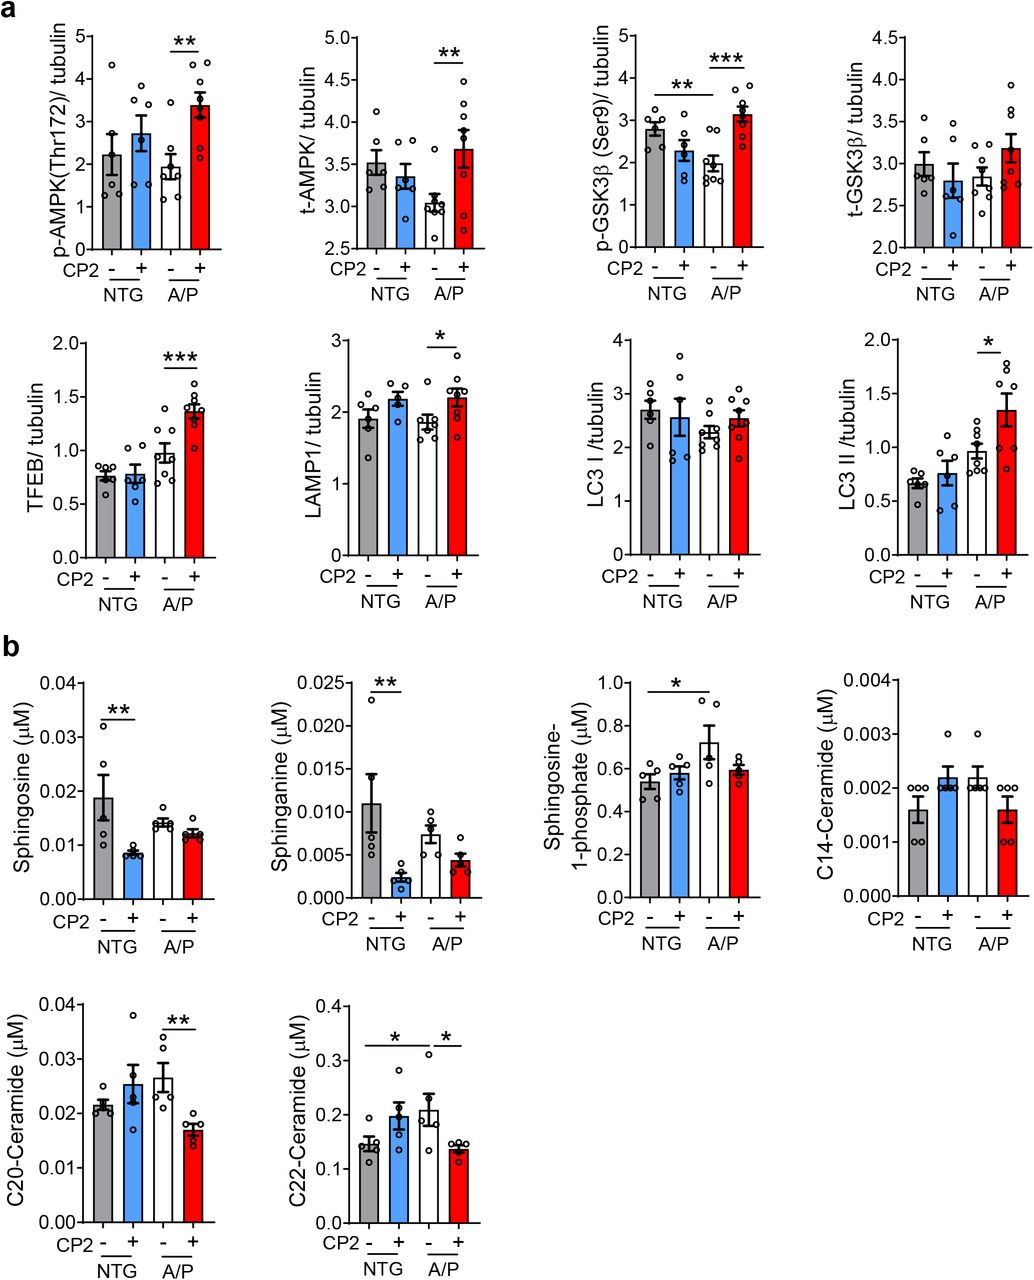 CP2 treatment induces autophagy in the brain and reduces levels of plasma ceramides in symptomatic APP/PS1 mice. a, CP2-dependent activation of AMPK and inhibition of GSK3β activates TFEB and increases autophagy in CP2-treated APP/PS1 mice. Quantification of Western blot analysis performed in the brain tissue of 23-month-old NTG and APP/PS1 mice treated with vehicle or CP2. n = 6 - 8 mice per group. b, Plasma from vehicle- and CP2-treated NTG and APP/PS1 mice 23-month-old ( n = 5 per group) was obtained via retro-orbital bleeding. Ceramide concentrations were determined using targeted metabolomics approach and electrospray ionization mass spectrometry ESI/MS. Significance was determined by two-way ANOVA with Fisher`s LSD post-hoc test. A/P, APP/PS1; NTG, non-transgenic littermates. Data are presented as mean ± S.E.M. *P